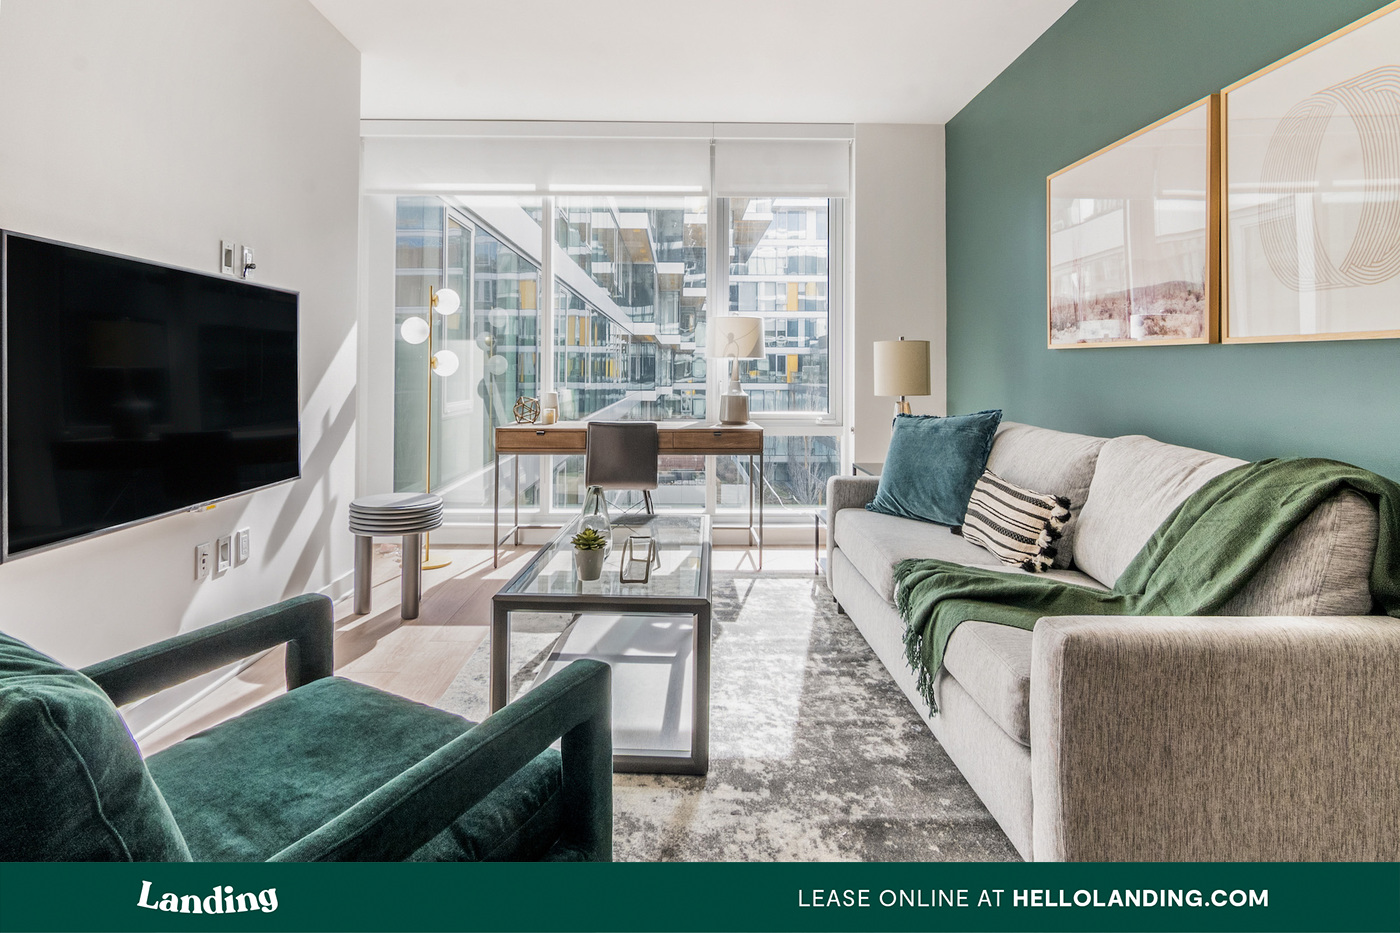 Landing Furnished Apartment Arista Uptown for rent